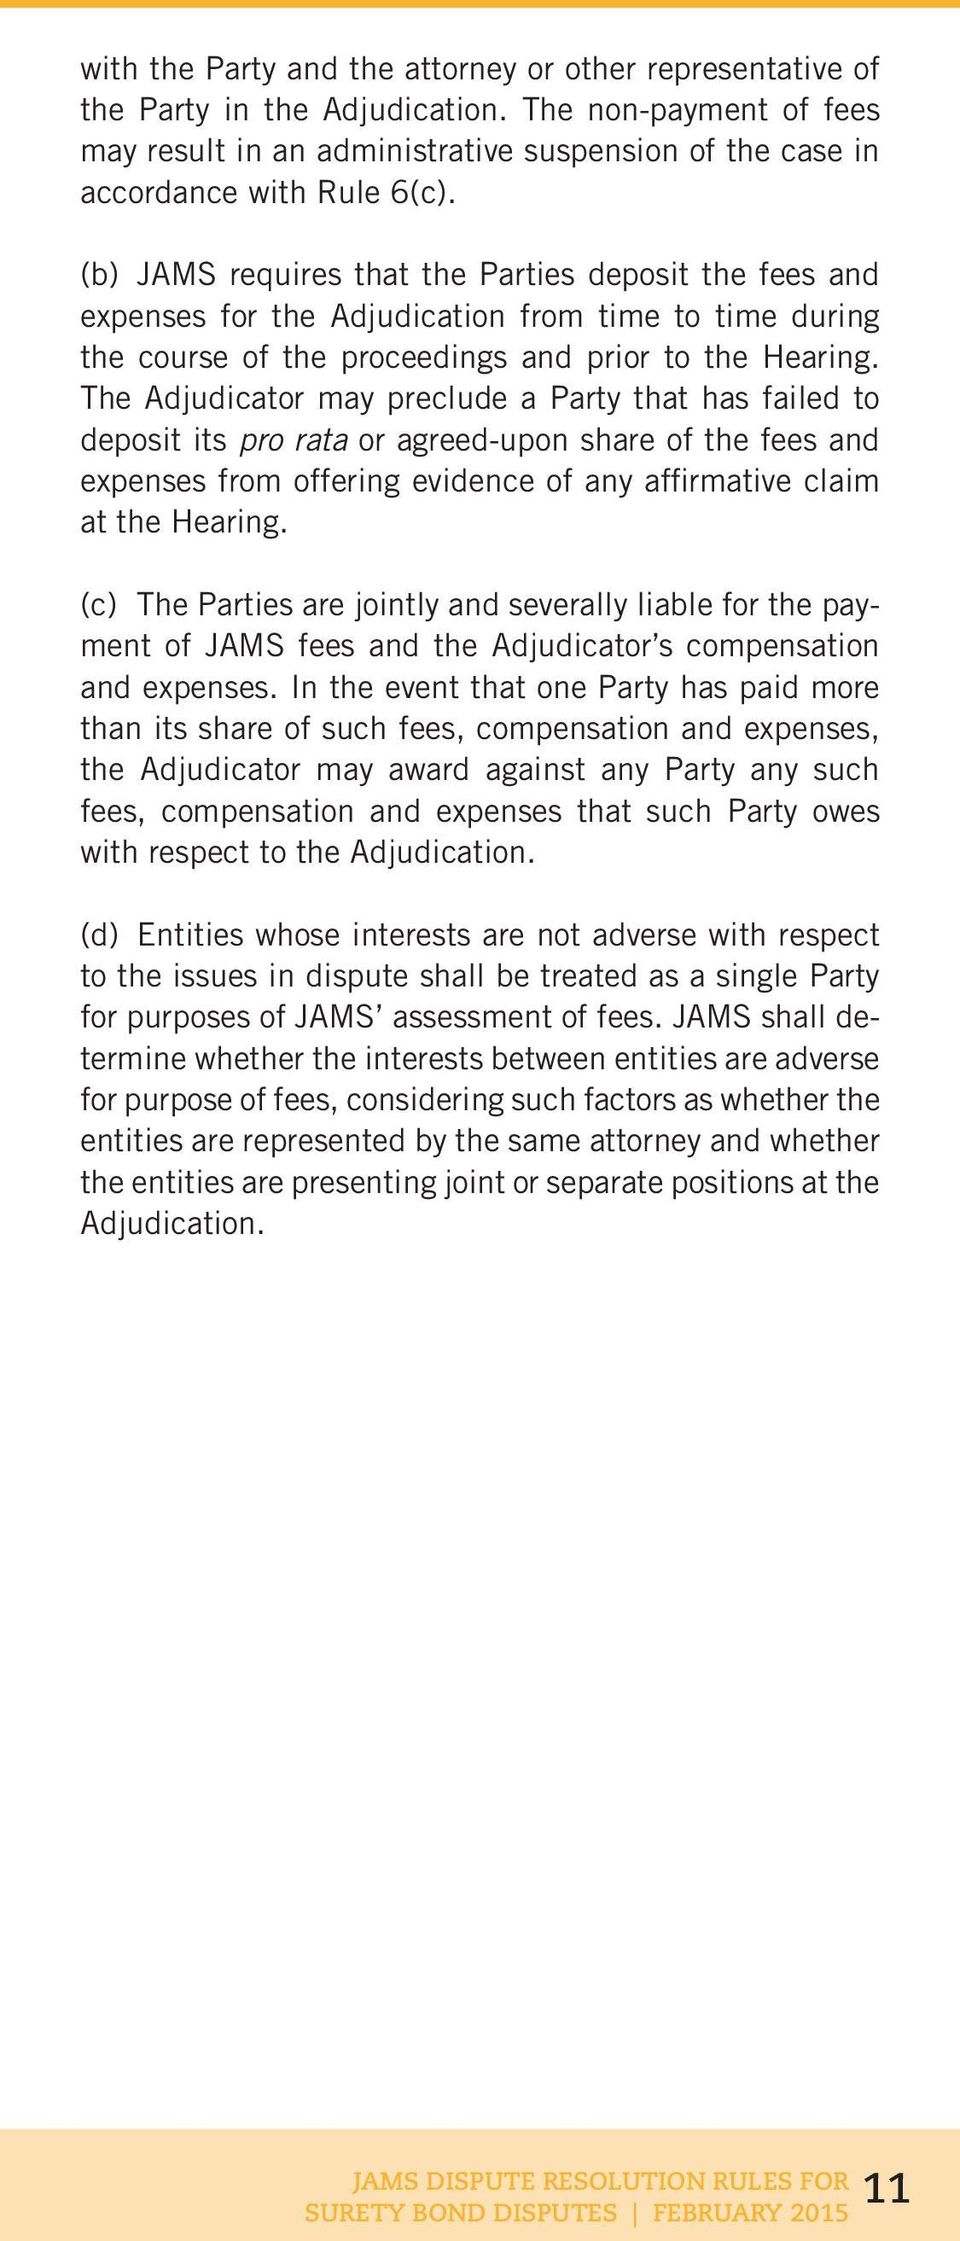 The Adjudicator may preclude a Party that has failed to deposit its pro rata or agreed-upon share of the fees and expenses from offering evidence of any affirmative claim at the Hearing.